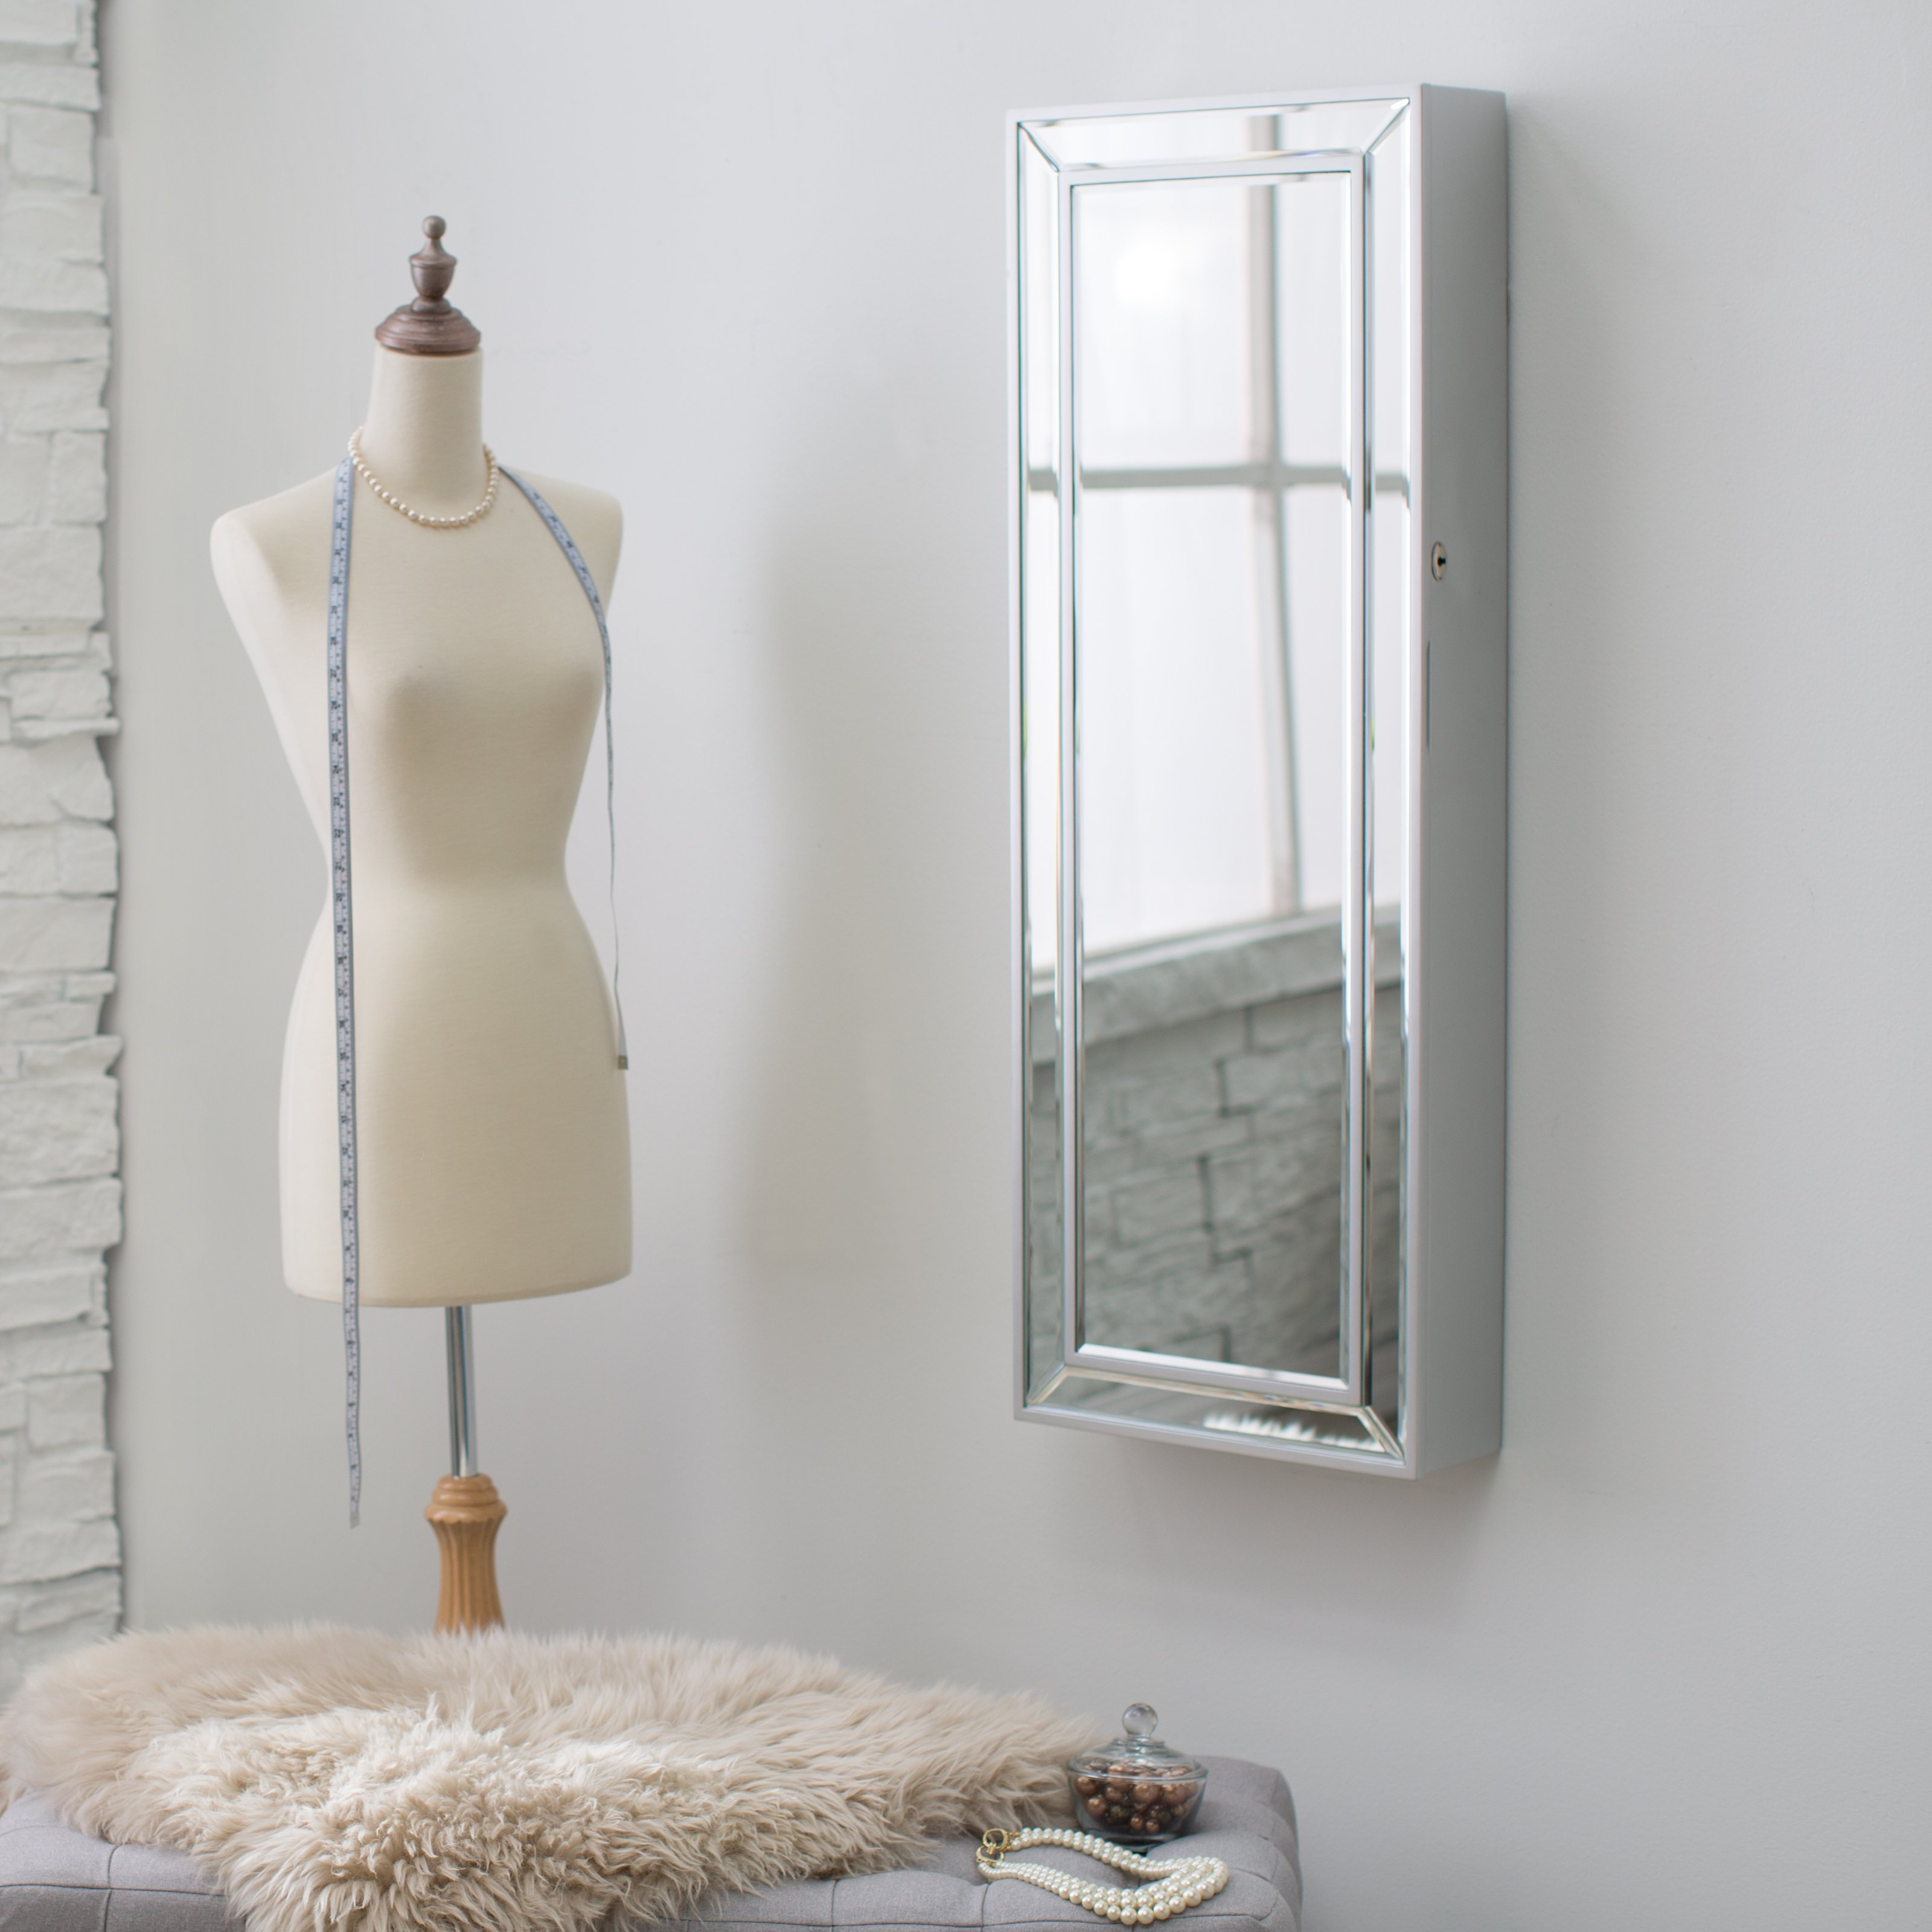 Amazing Design Wall Mounted Full Length Mirror Idea 11 Decorative For Decorative Full Length Mirror (View 15 of 15)